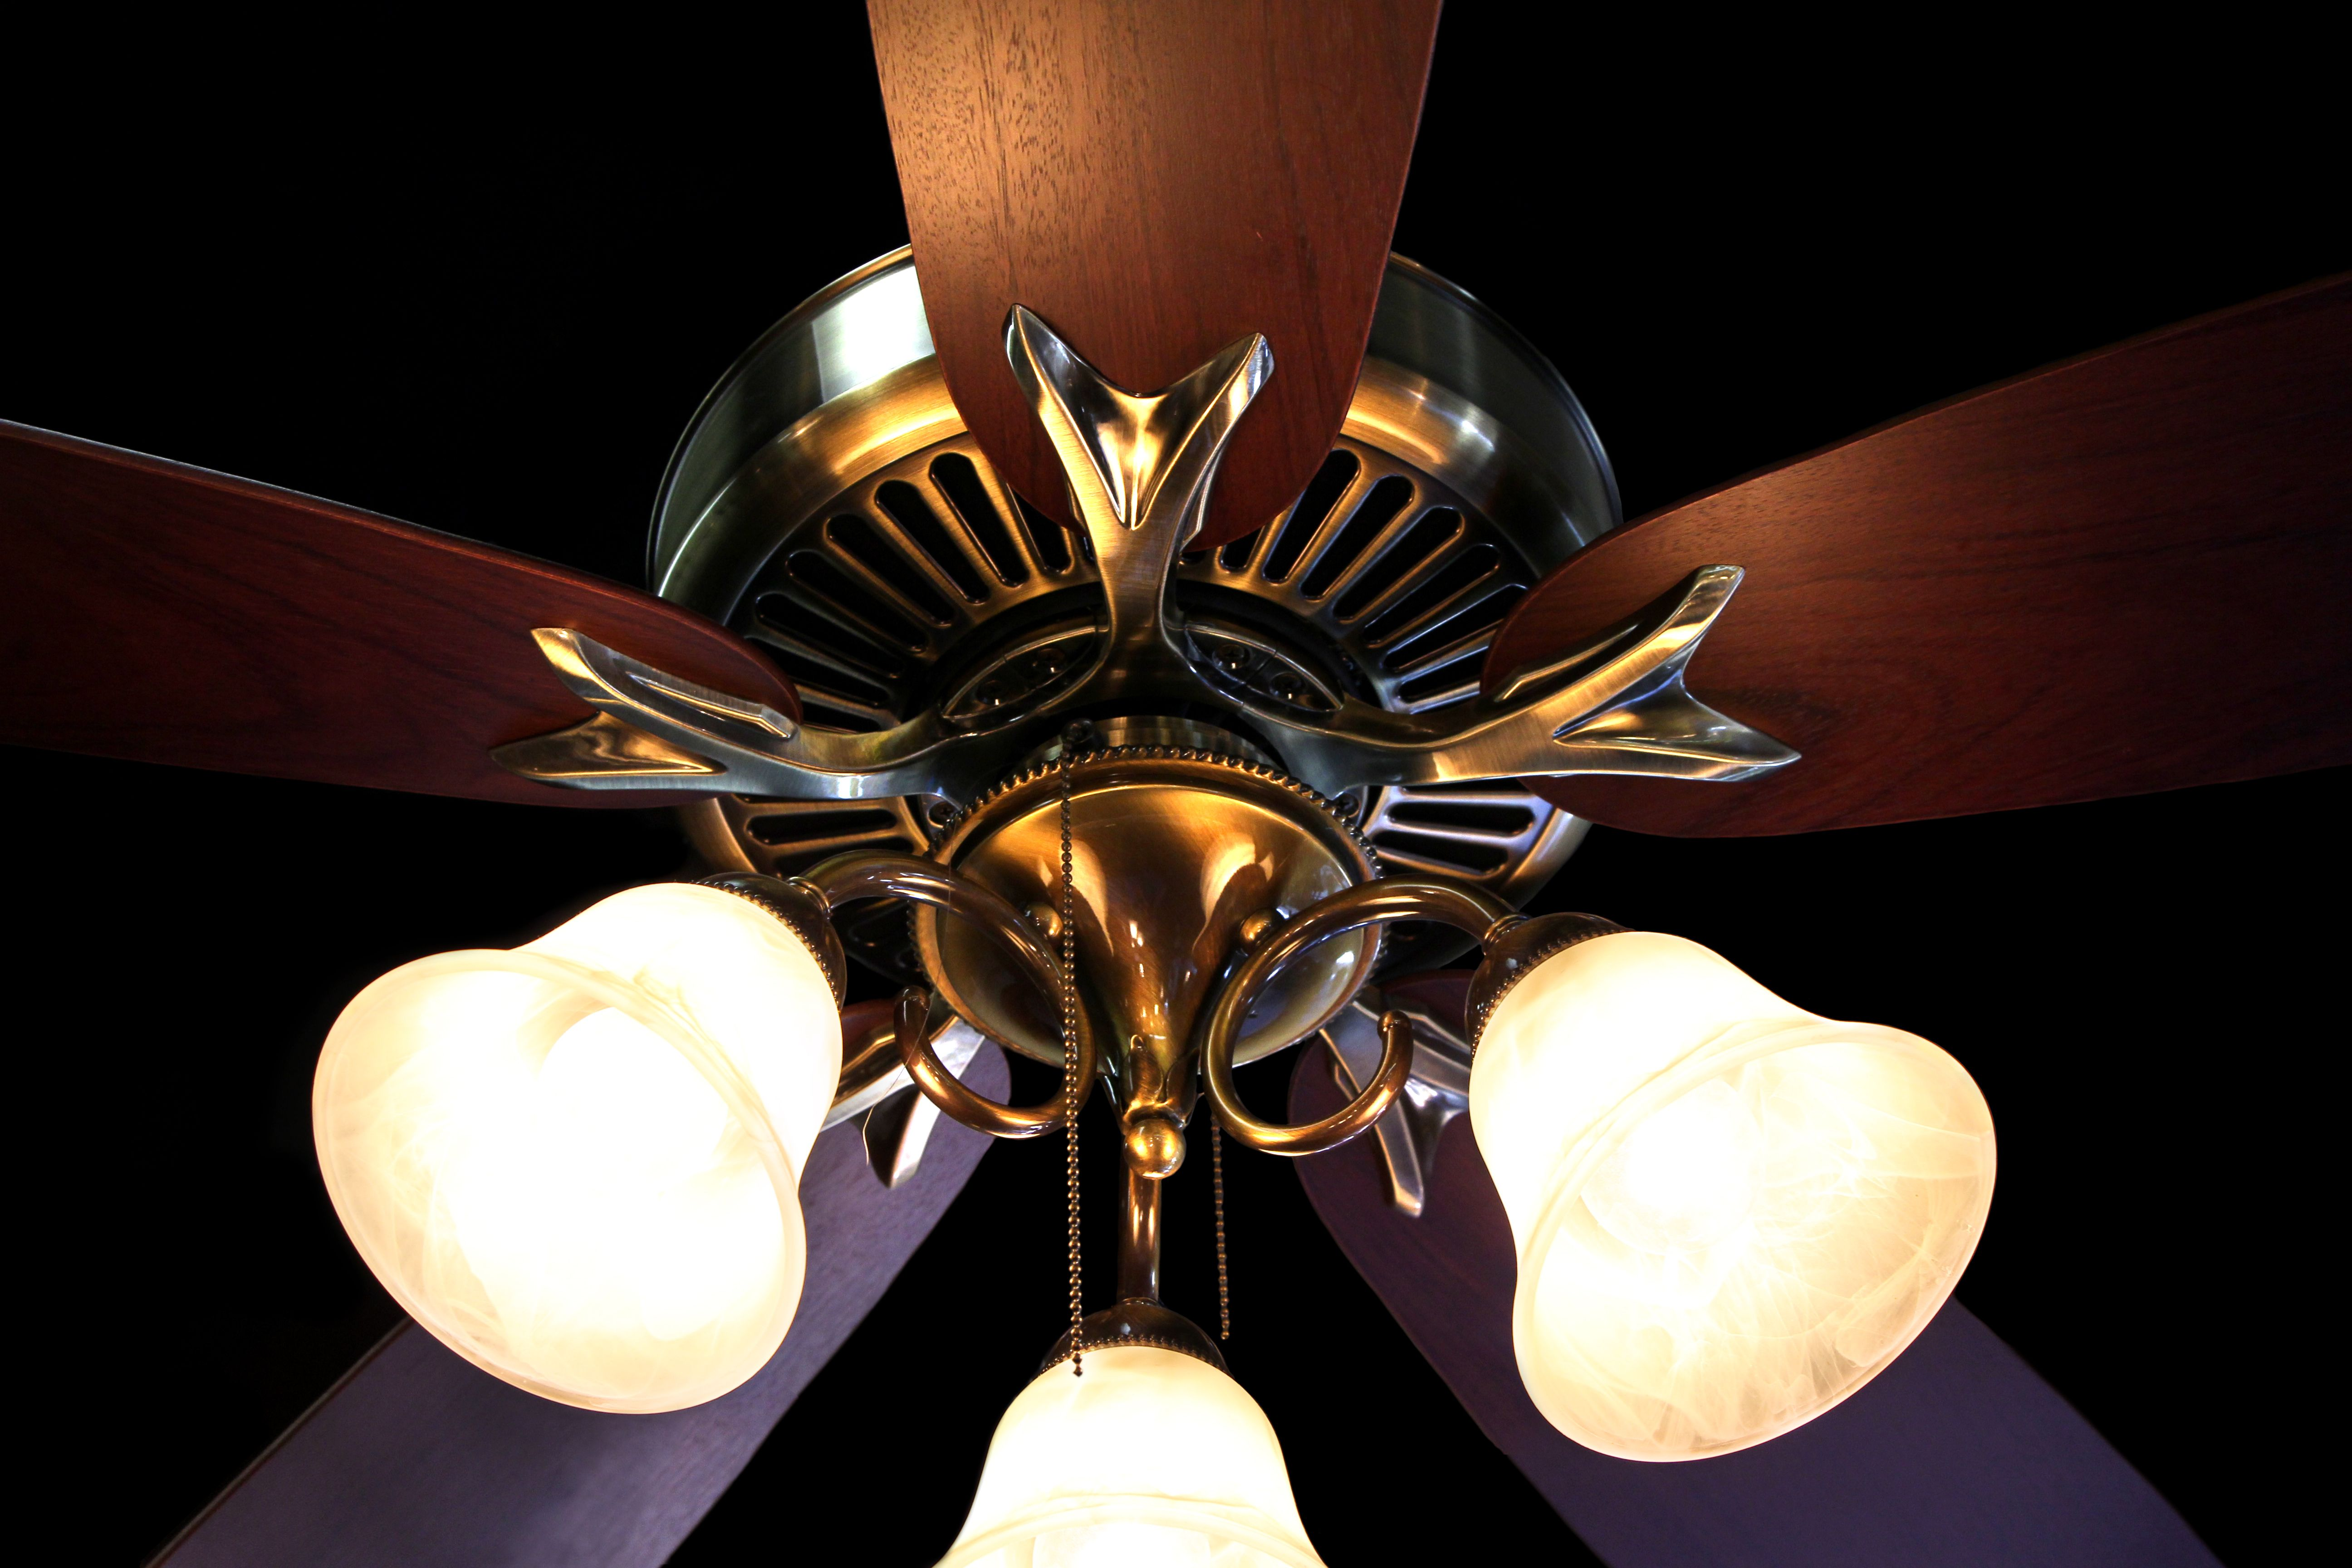 Premium Select By Emerson The Elegant Premium Select Comes Light Fixture Adaptable With Your Choice Of Traditional Ceiling Fans Ceiling Fan Beautiful Lighting